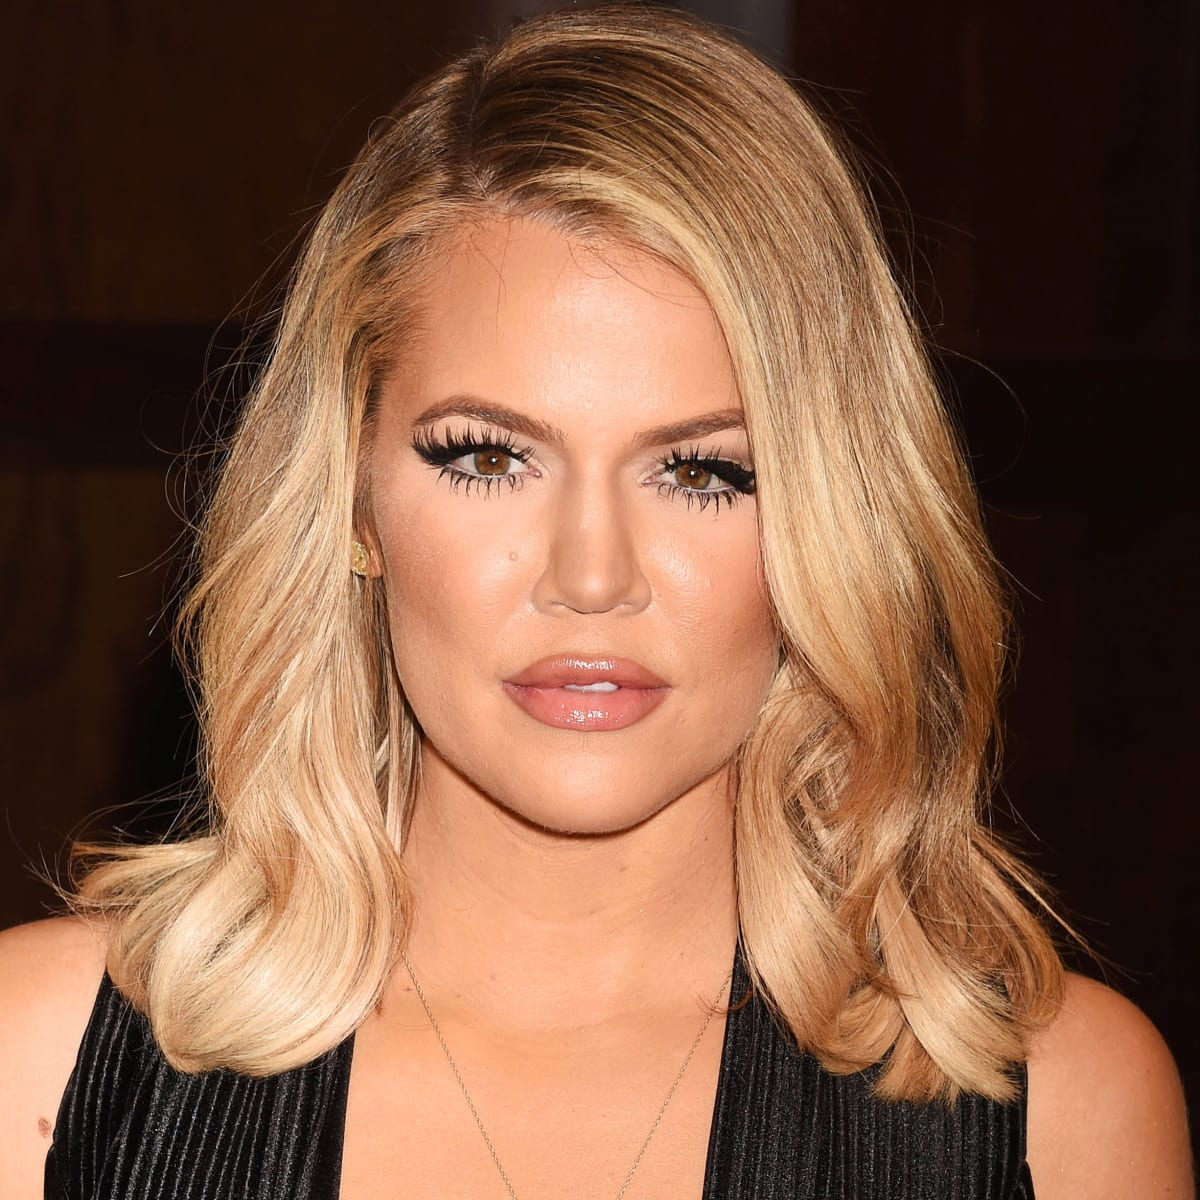 Khloe Kardashian Wants Peace Of Thought by Being Away From Social Media Going Offline!